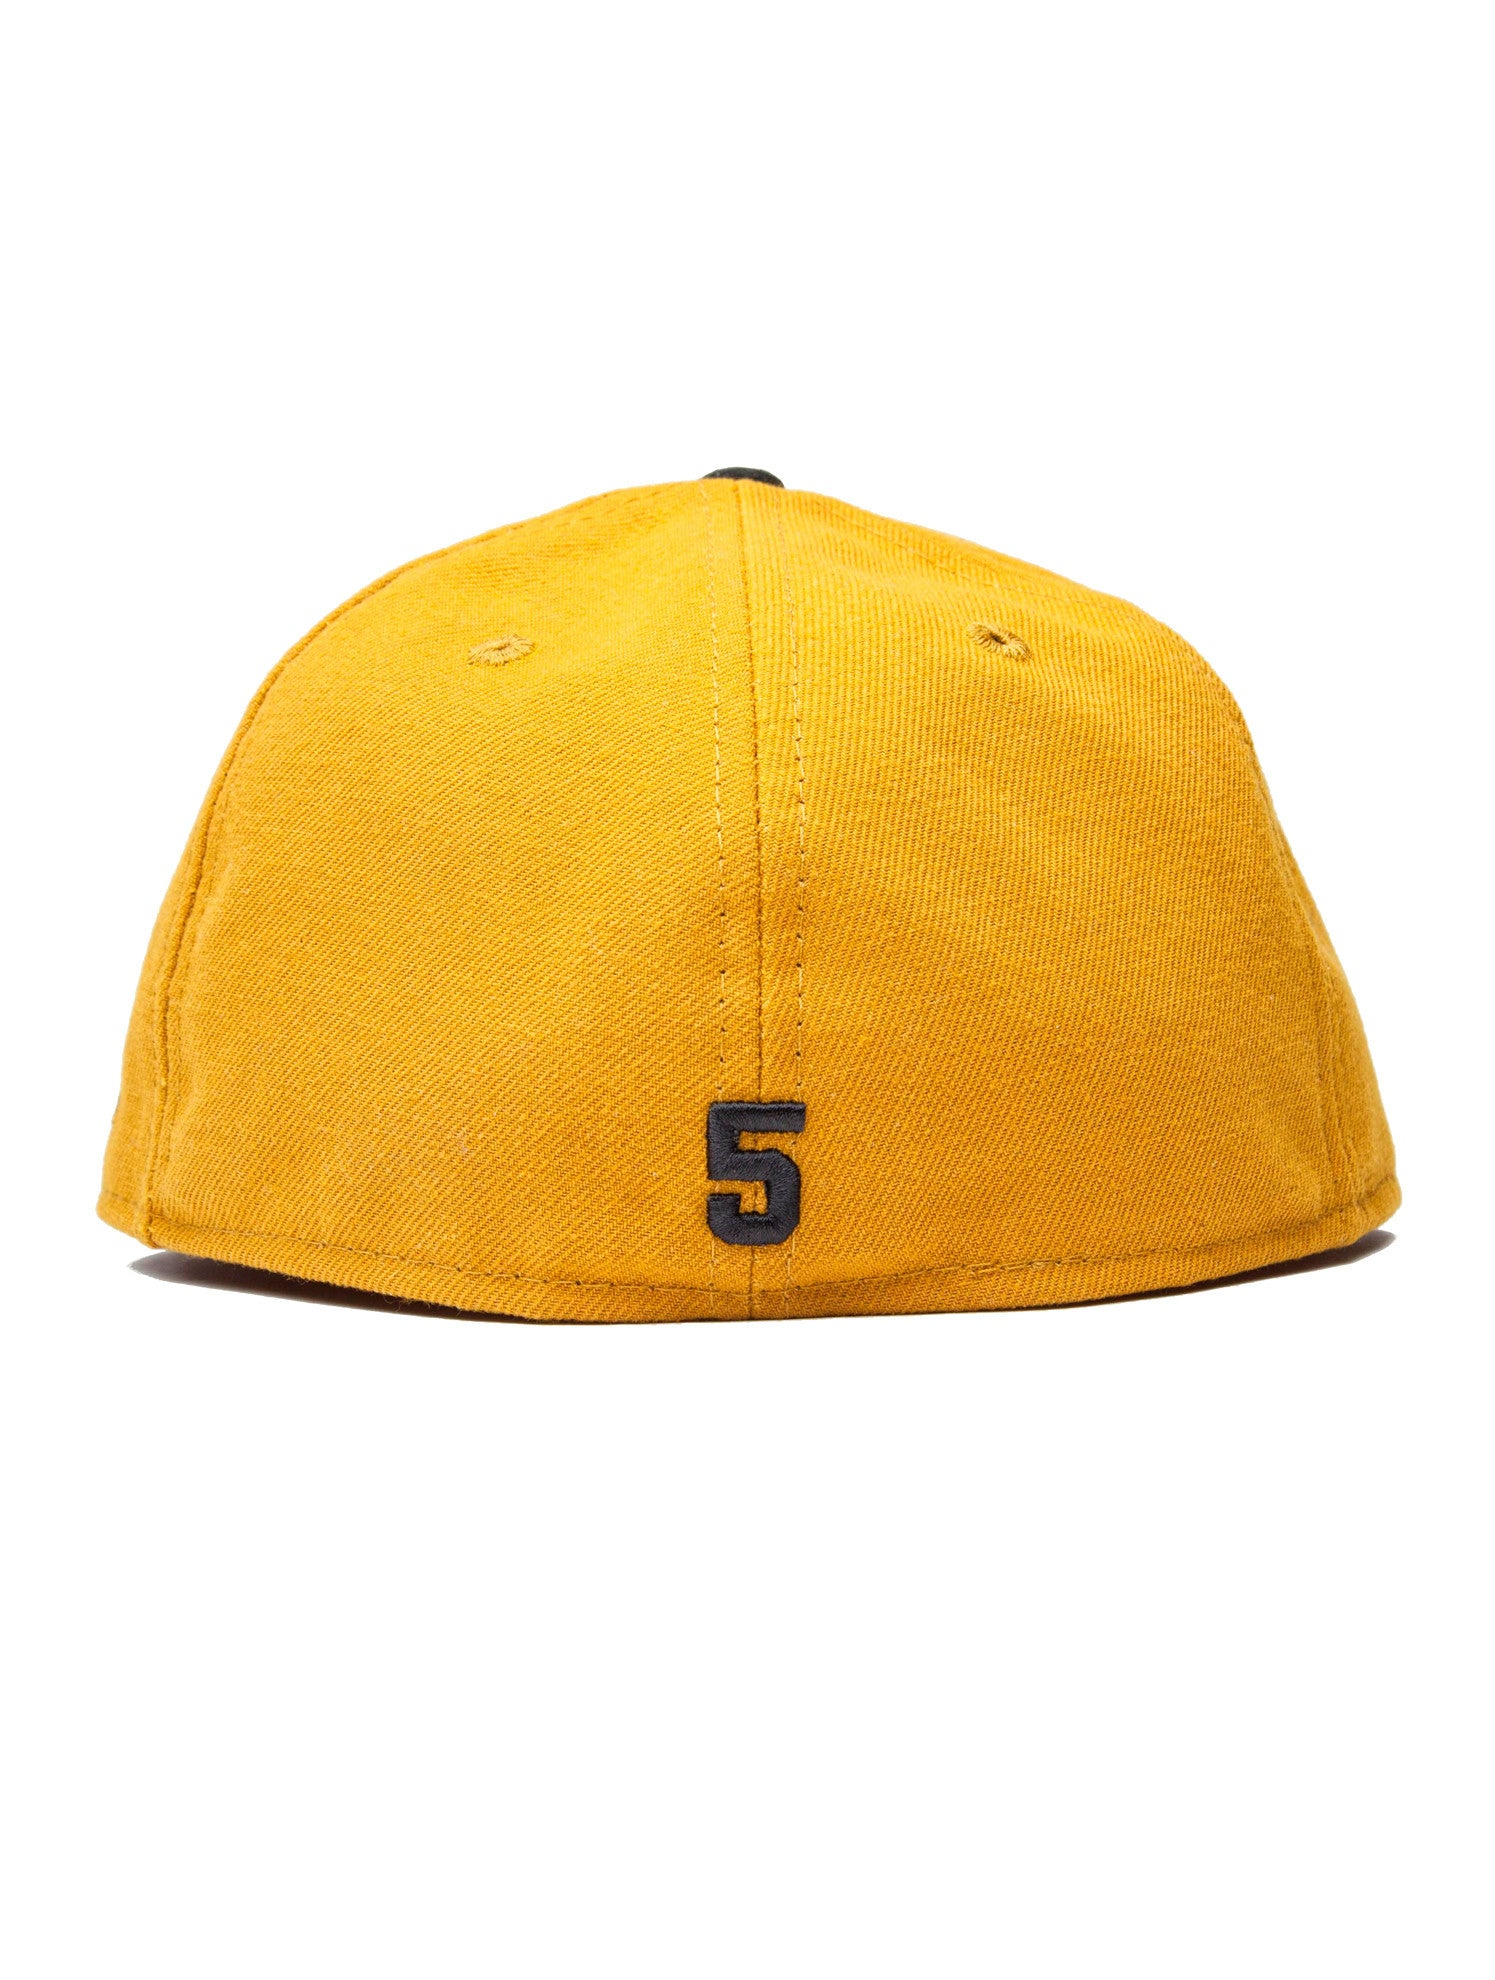 Gold New Era Fitted Cap (59FIFTY) 3